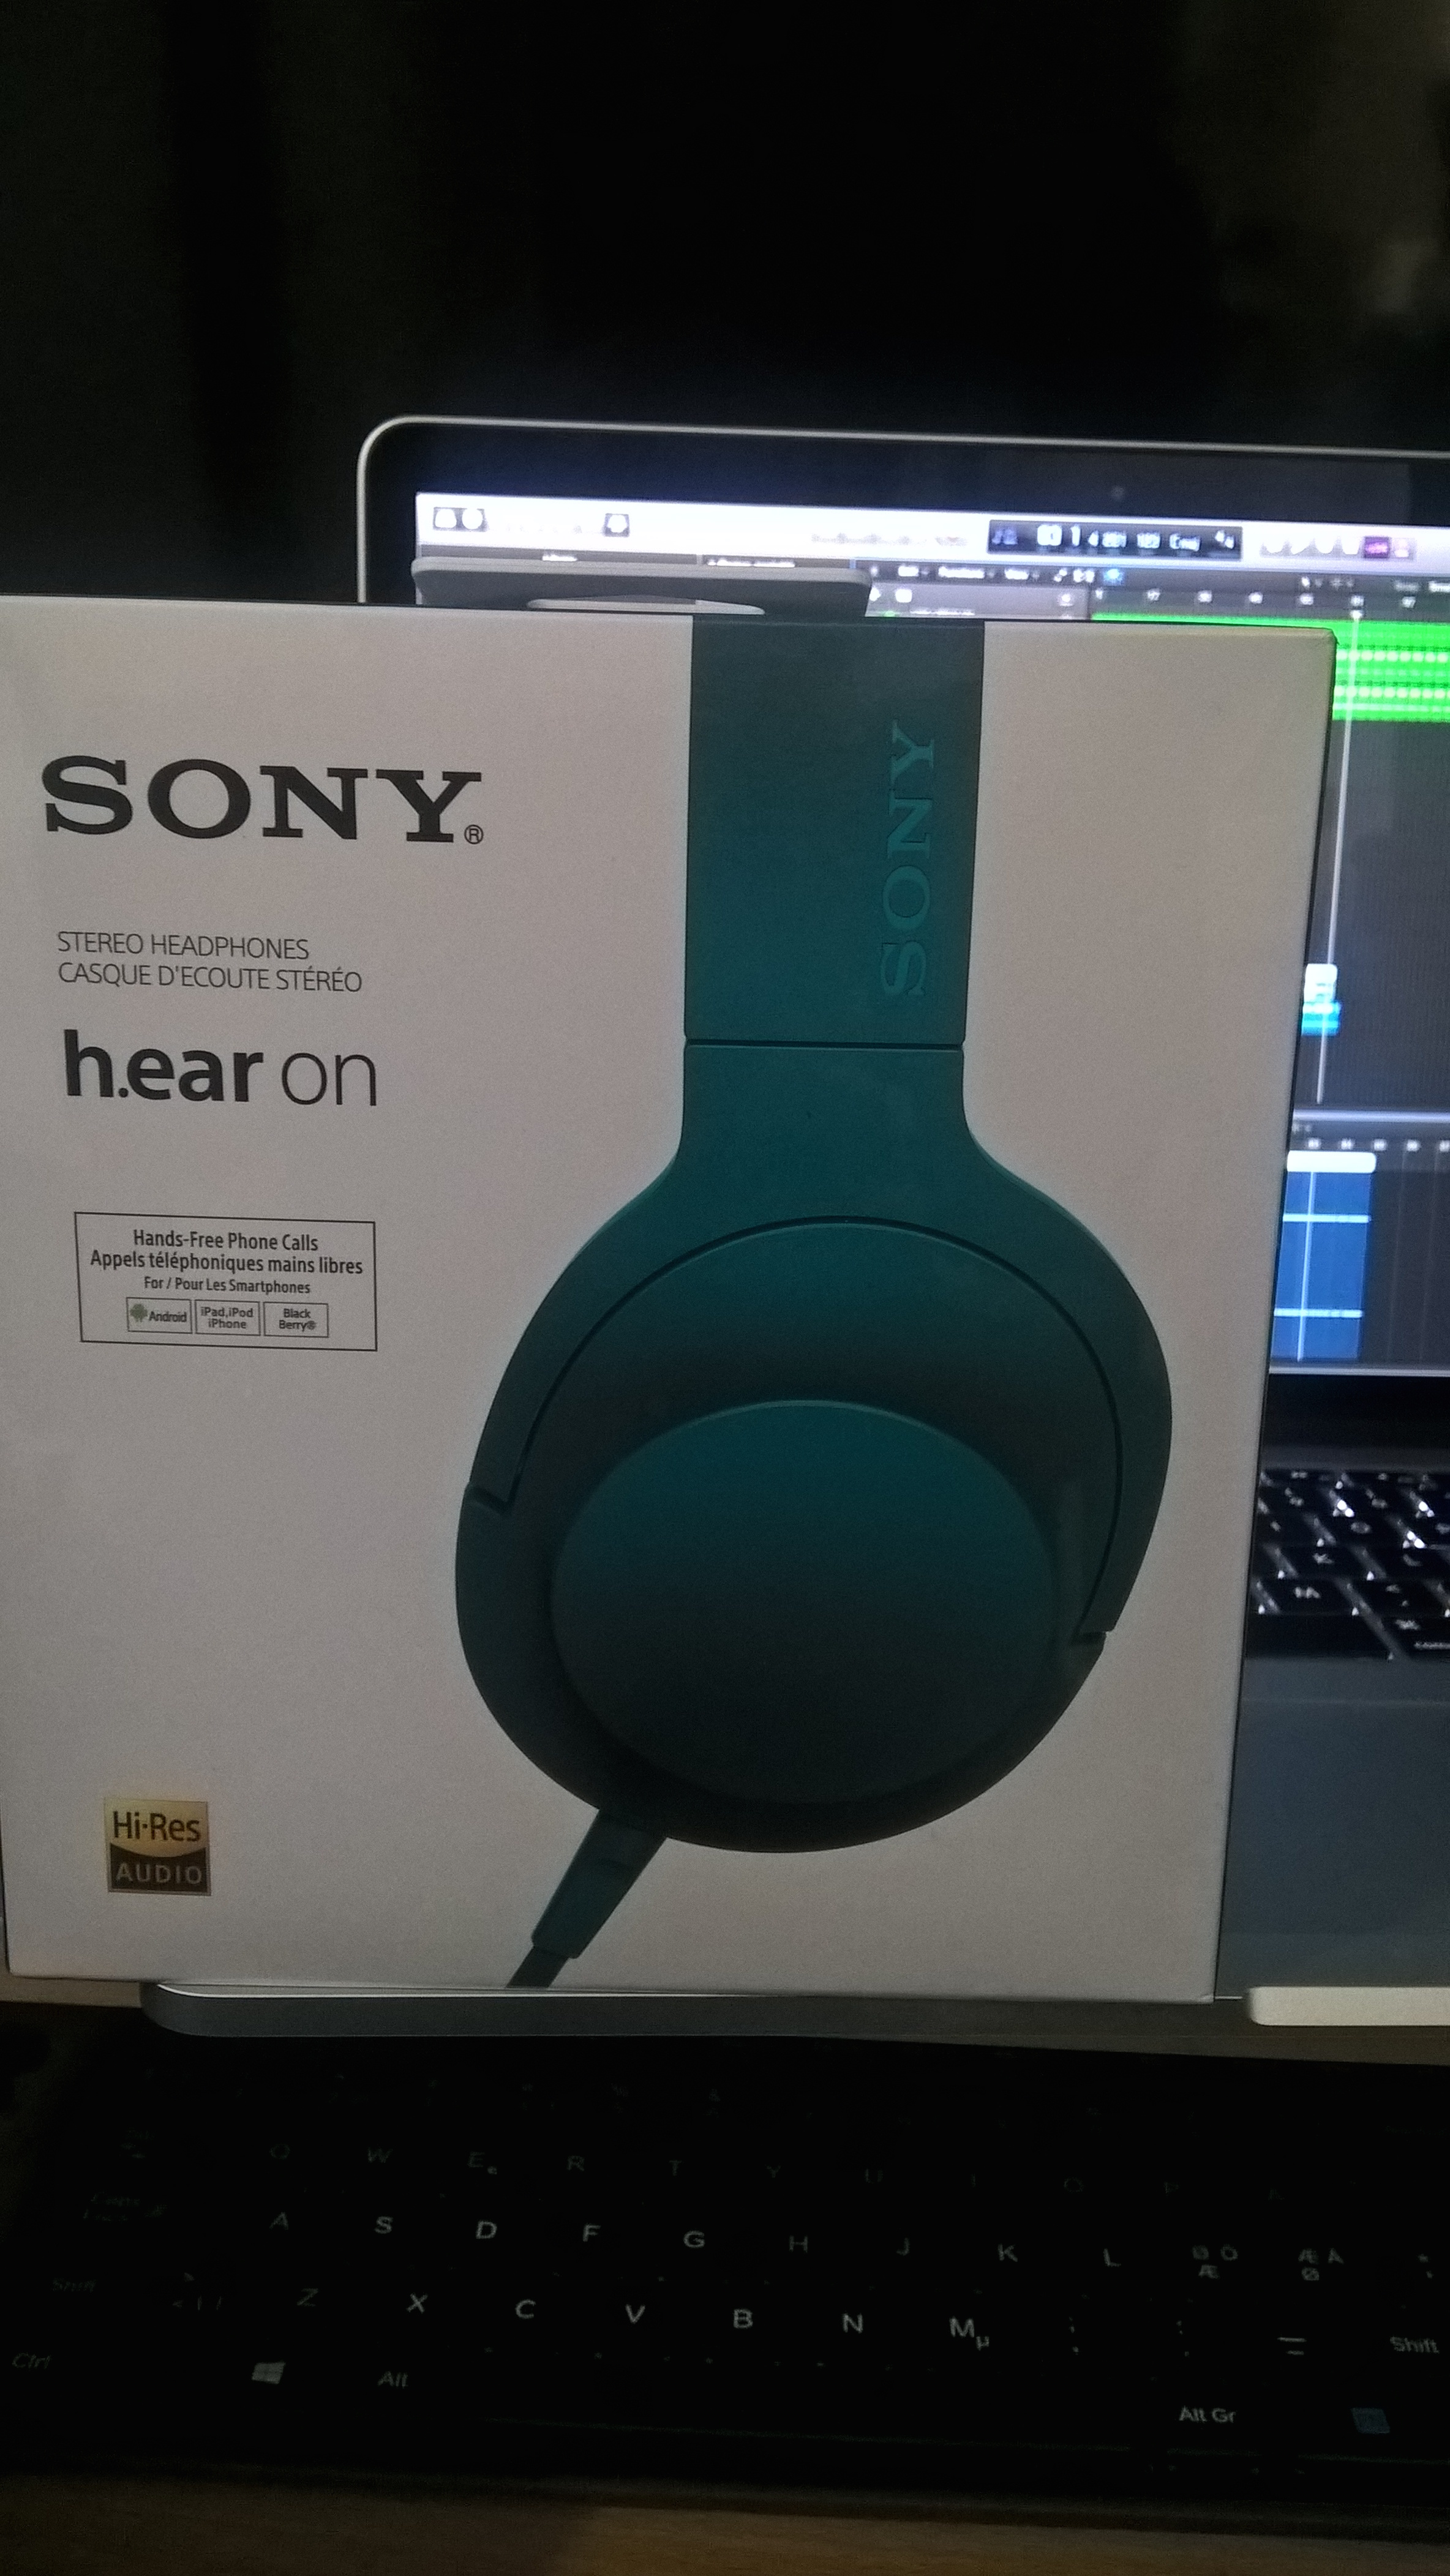 Sony Hear On Mdr 100aap 199 Hi Res Audio Over Ear Headphones High Resolution Red Wp 20151013 13 20 35 Pro